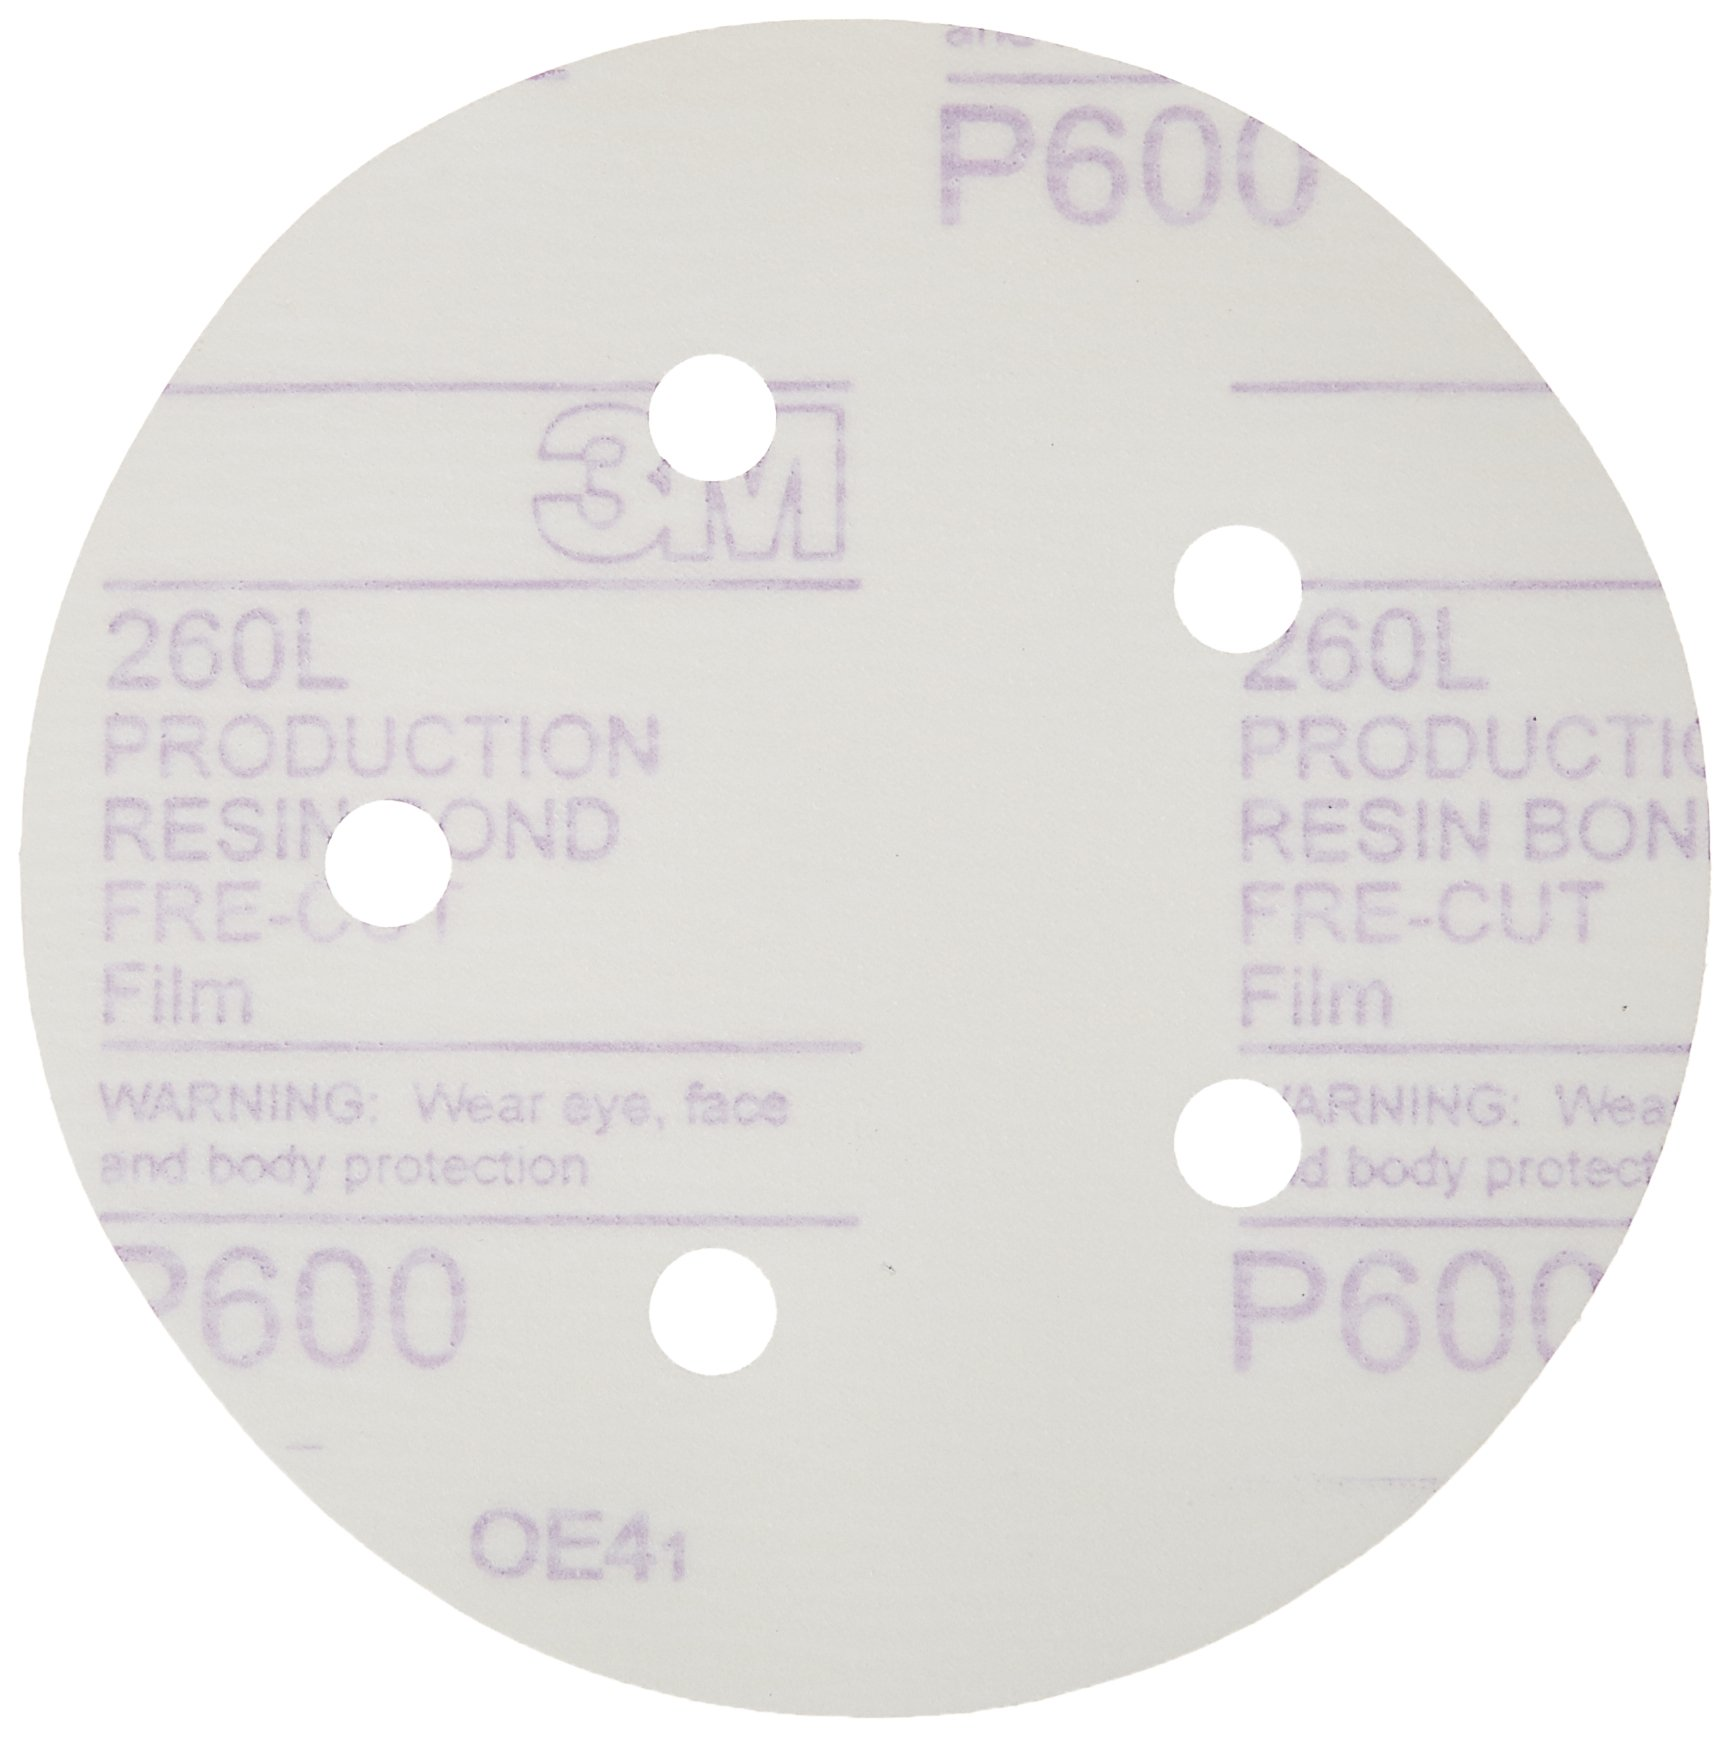 3M 01055 Hookit 5'' P600 Grit Dust-Free Finishing Film Disc by 3M (Image #1)